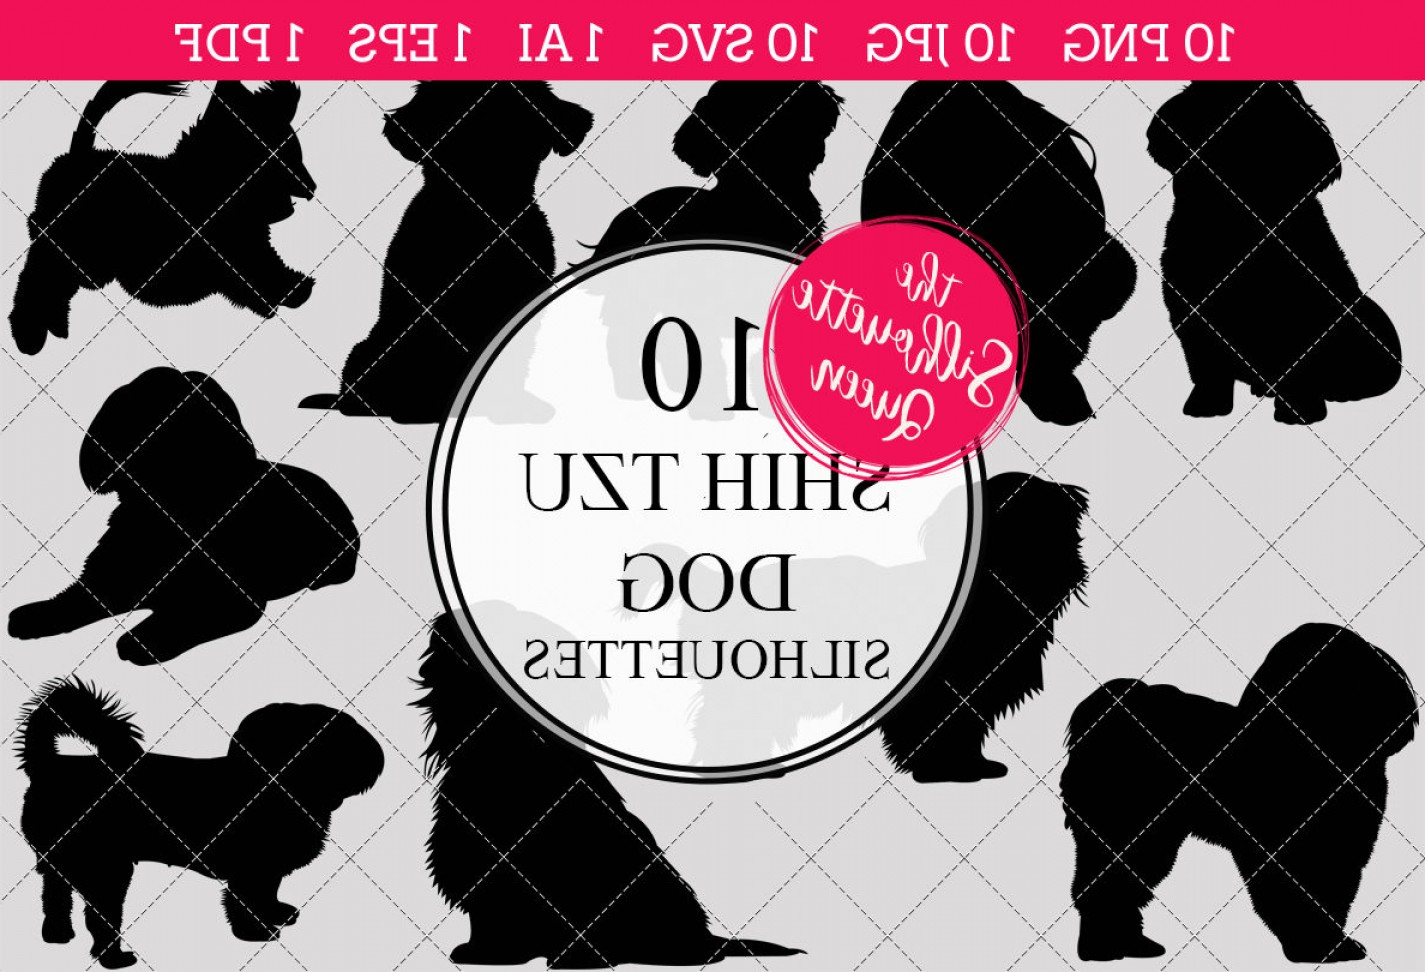 Shih Tzu Vector Siluete: Shih Tzu Dog Silhouettes Clipart Clip Art Ai Eps Svgs Jpgs Pngs Pdf Shih Tzu Clipart Vectors Commercial Personal Use